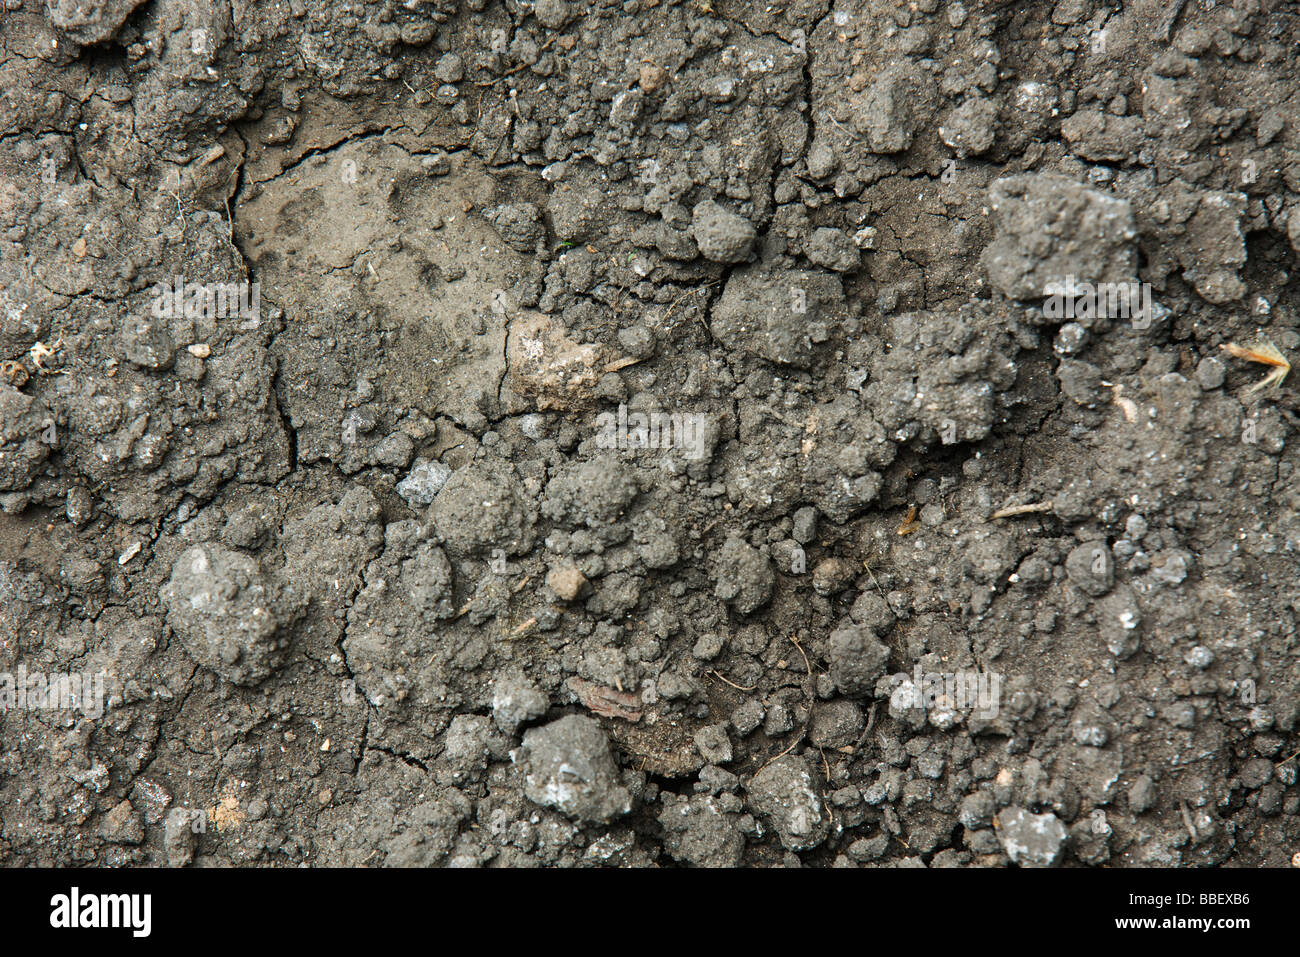 Soil mixed with gravel, rubble - Stock Image